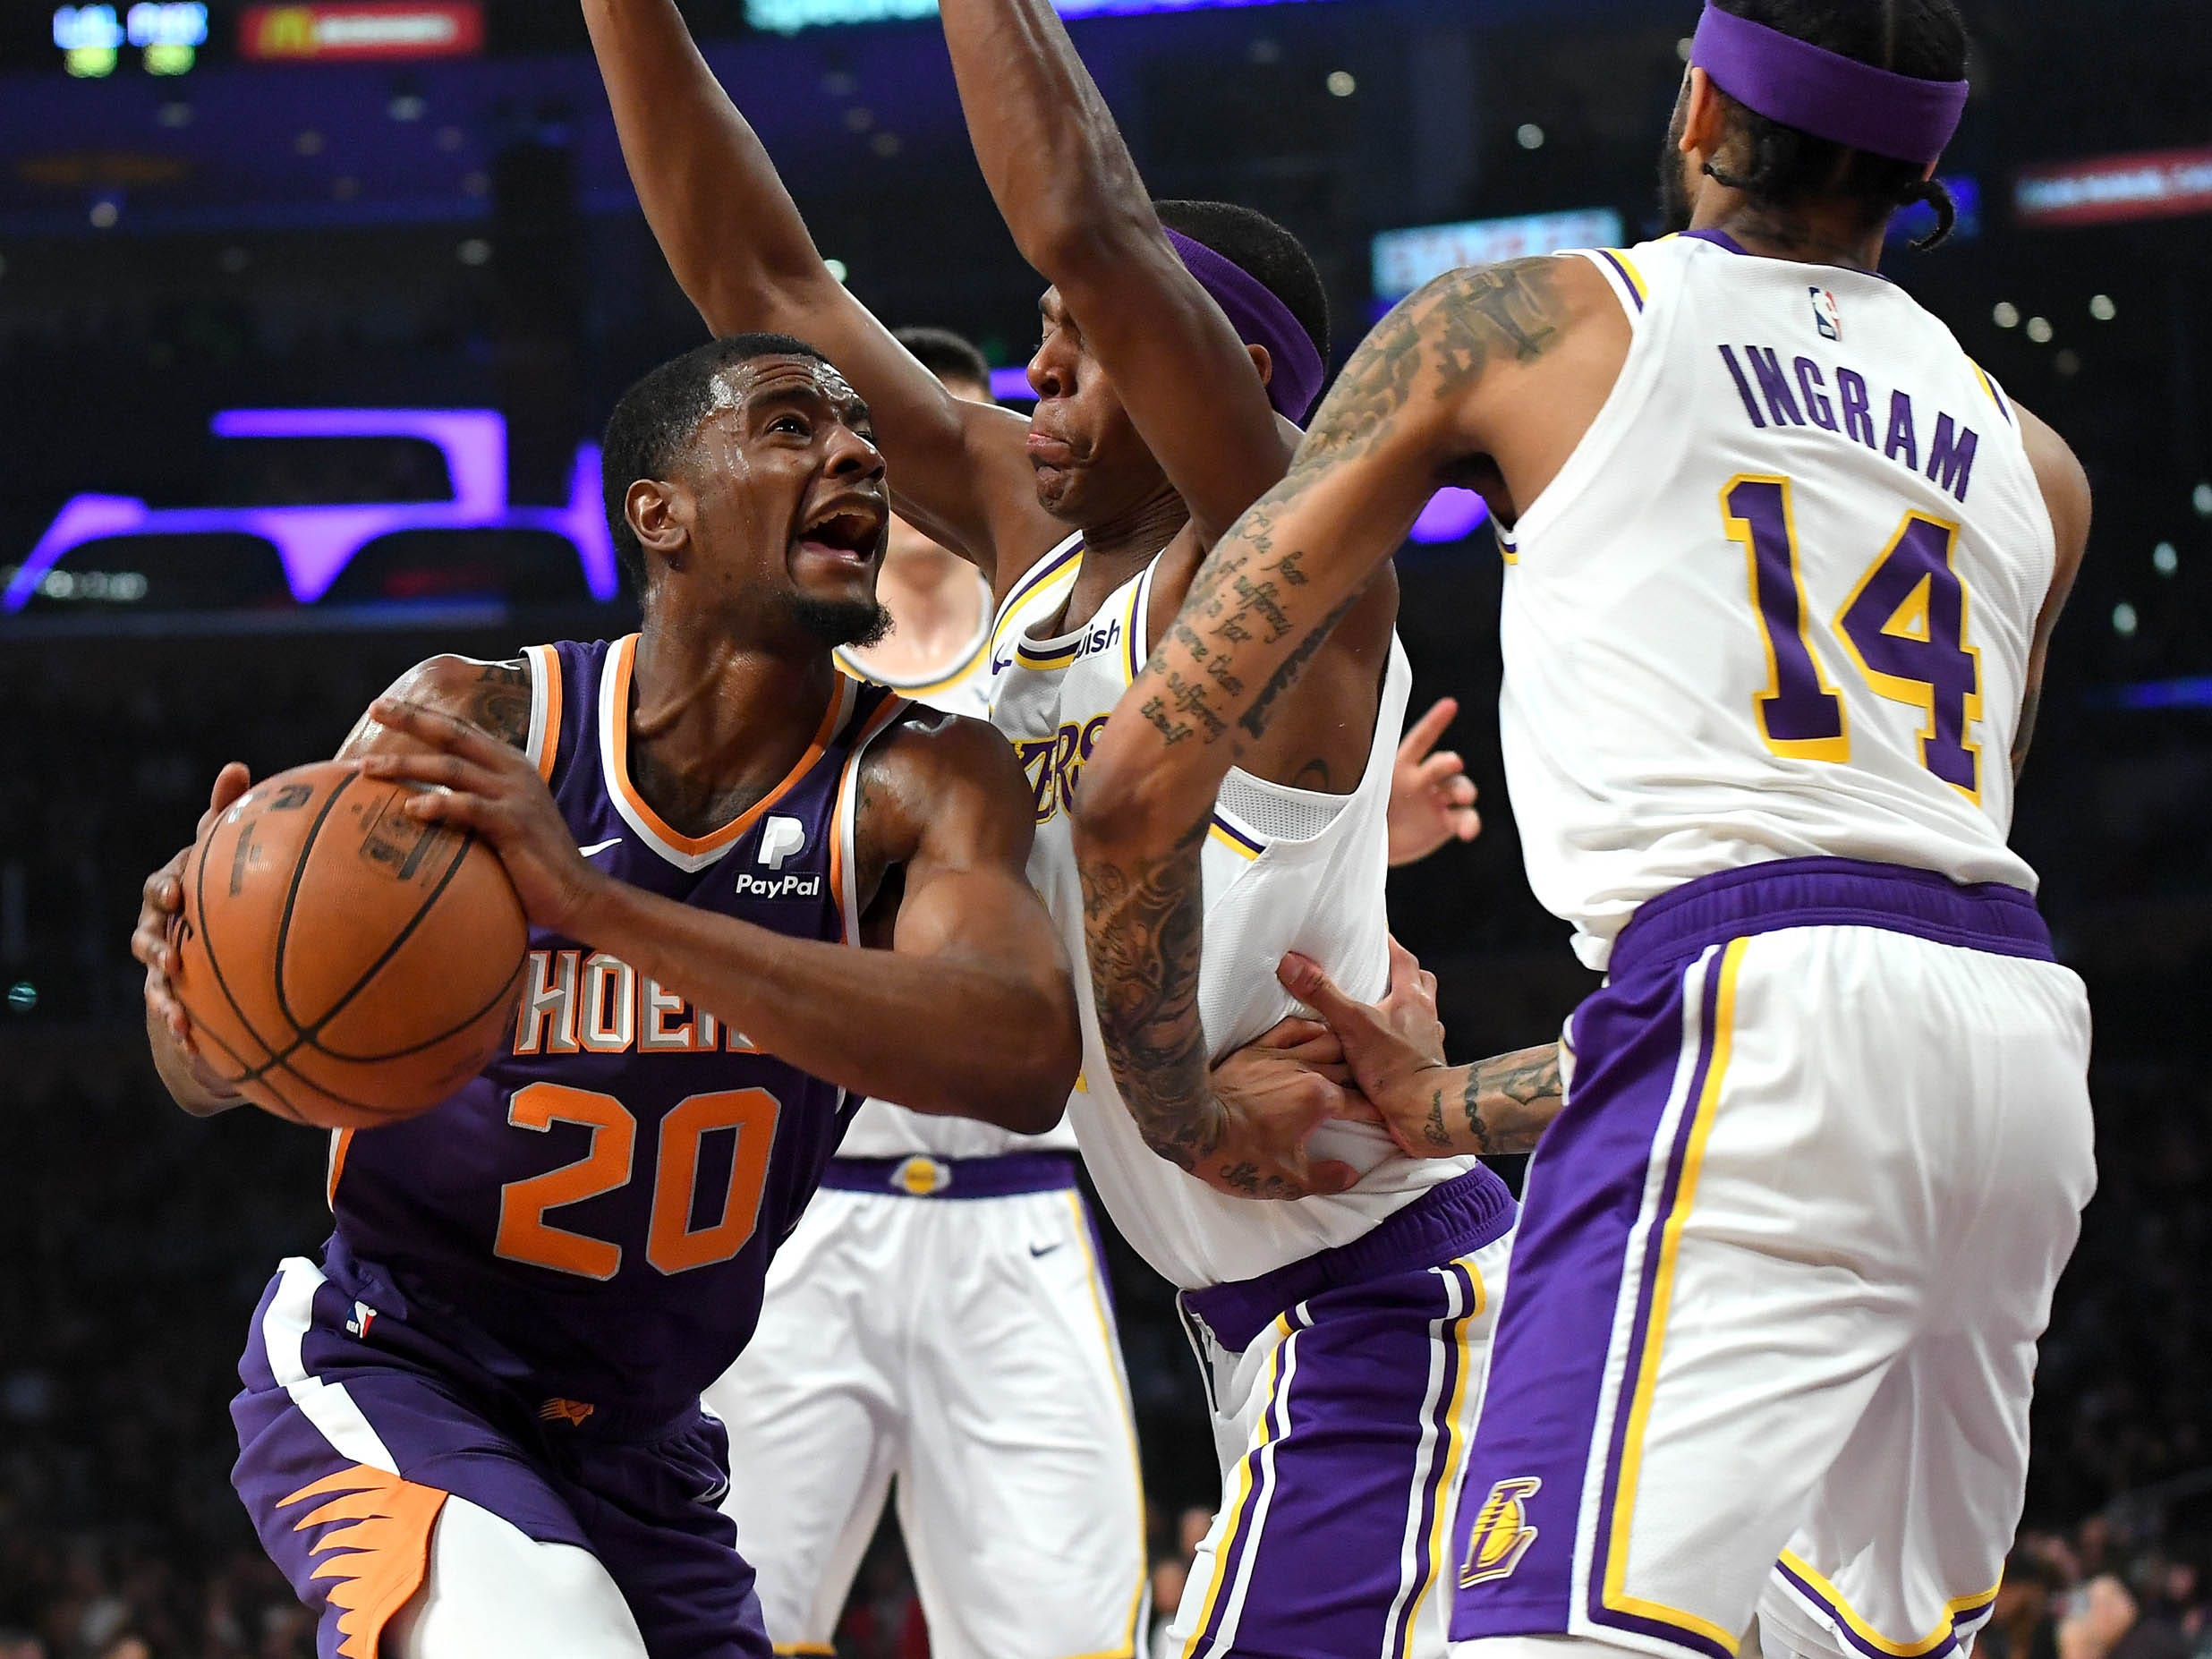 Jan 27, 2019: Los Angeles Lakers guard Kentavious Caldwell-Pope (1) and forward Brandon Ingram (14) guard Phoenix Suns forward Josh Jackson (20) as he drives to the basket in the first half of the game at Staples Center.